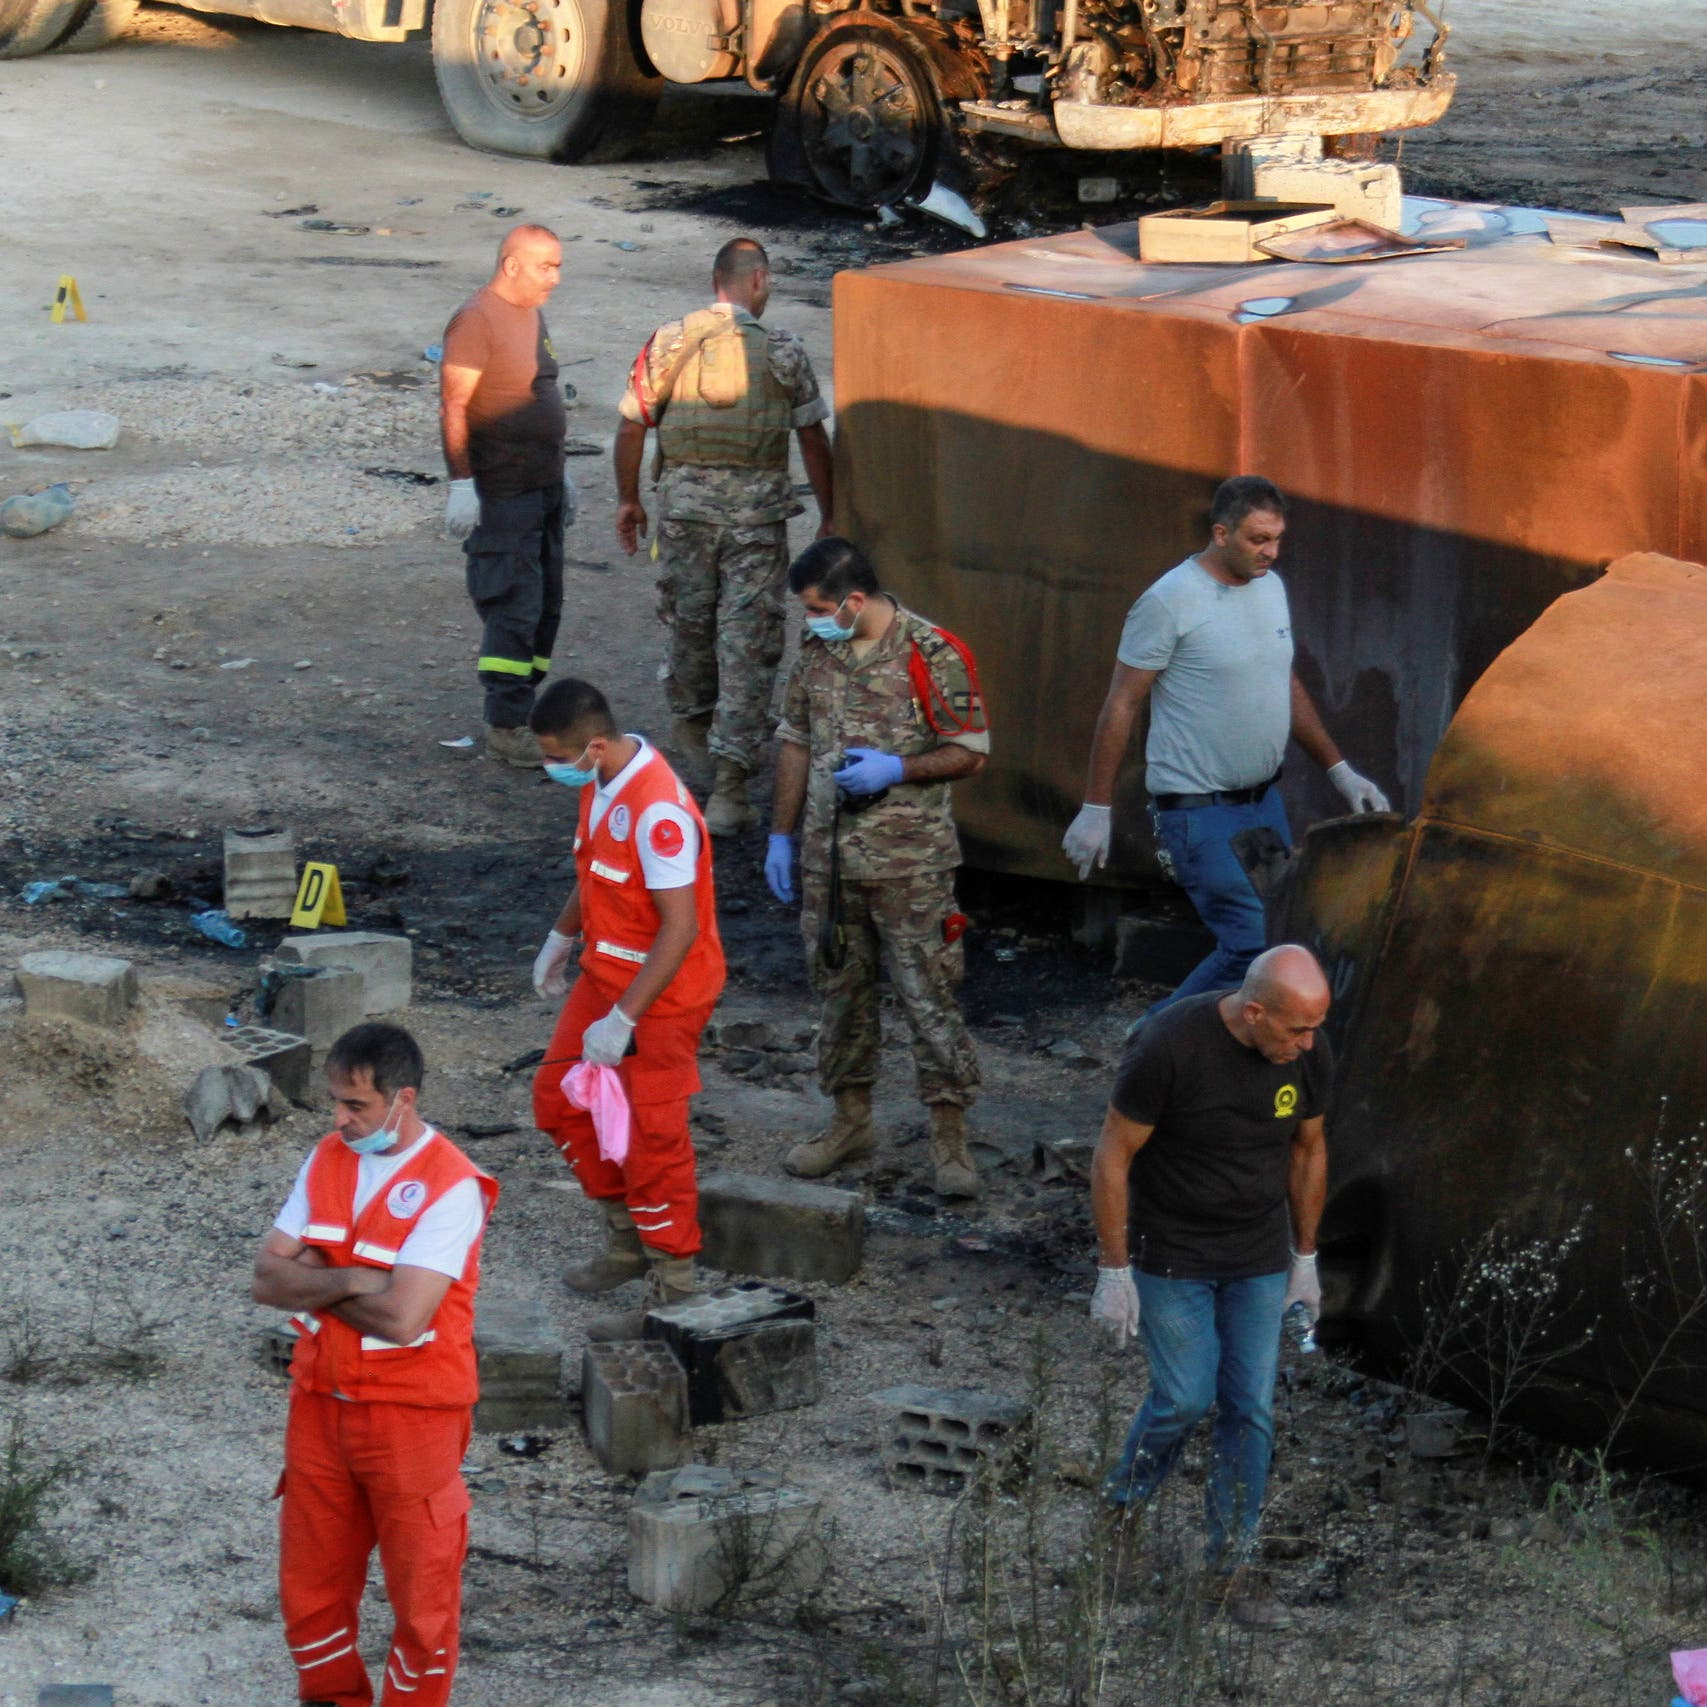 Gunfire or ignited lighter may have caused Lebanon fuel tanker explosion, 28 killed